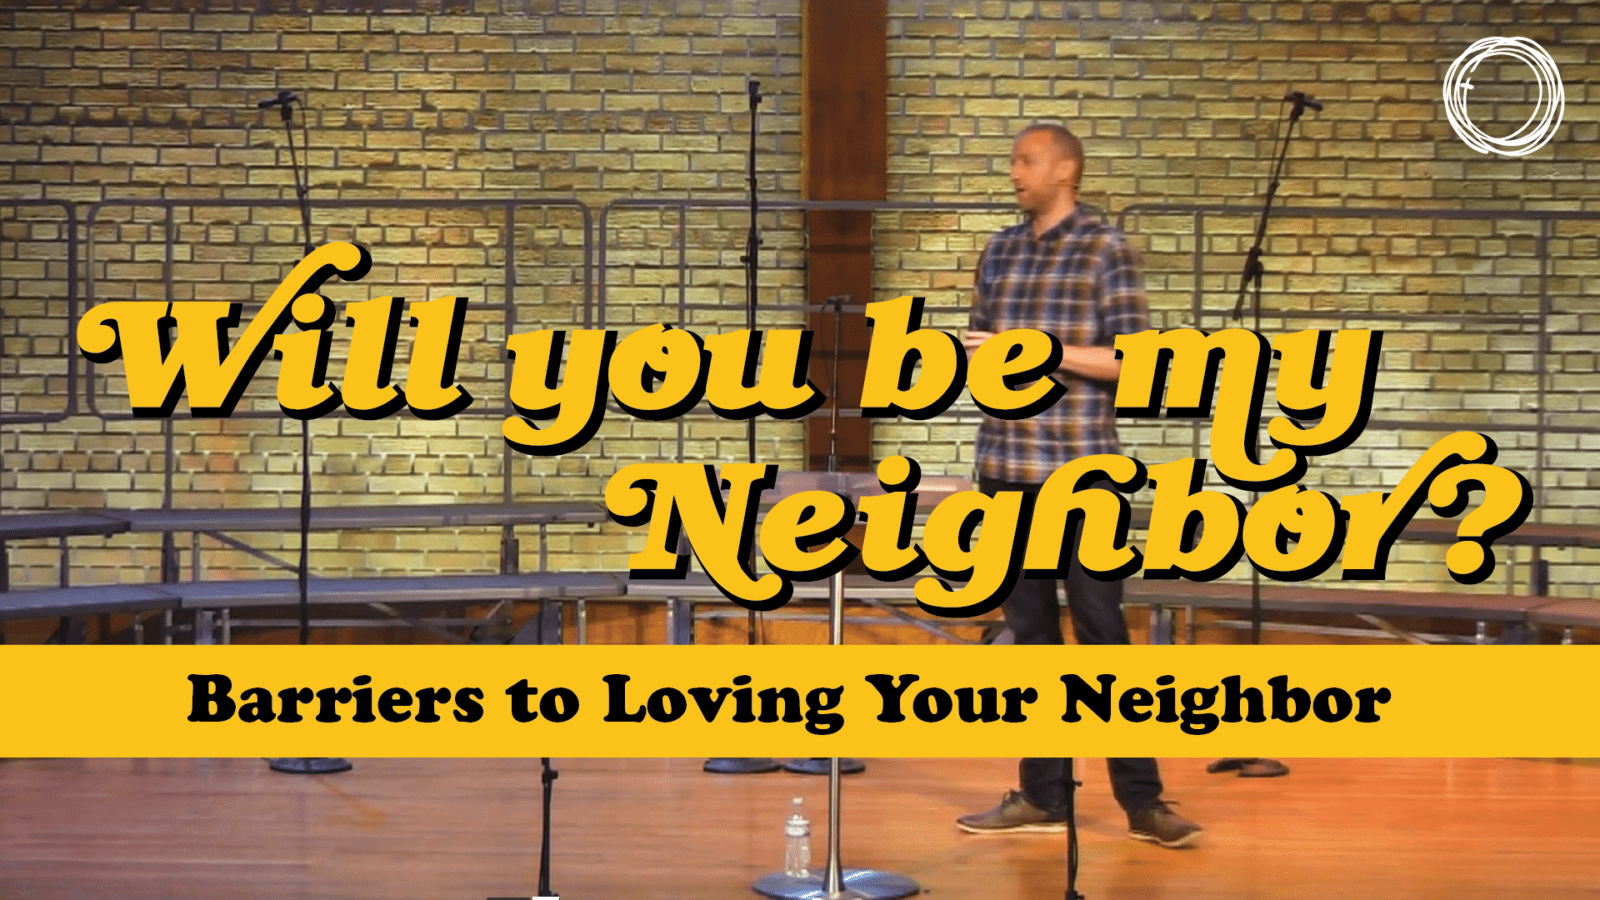 Barriers to Loving Your Neighbor